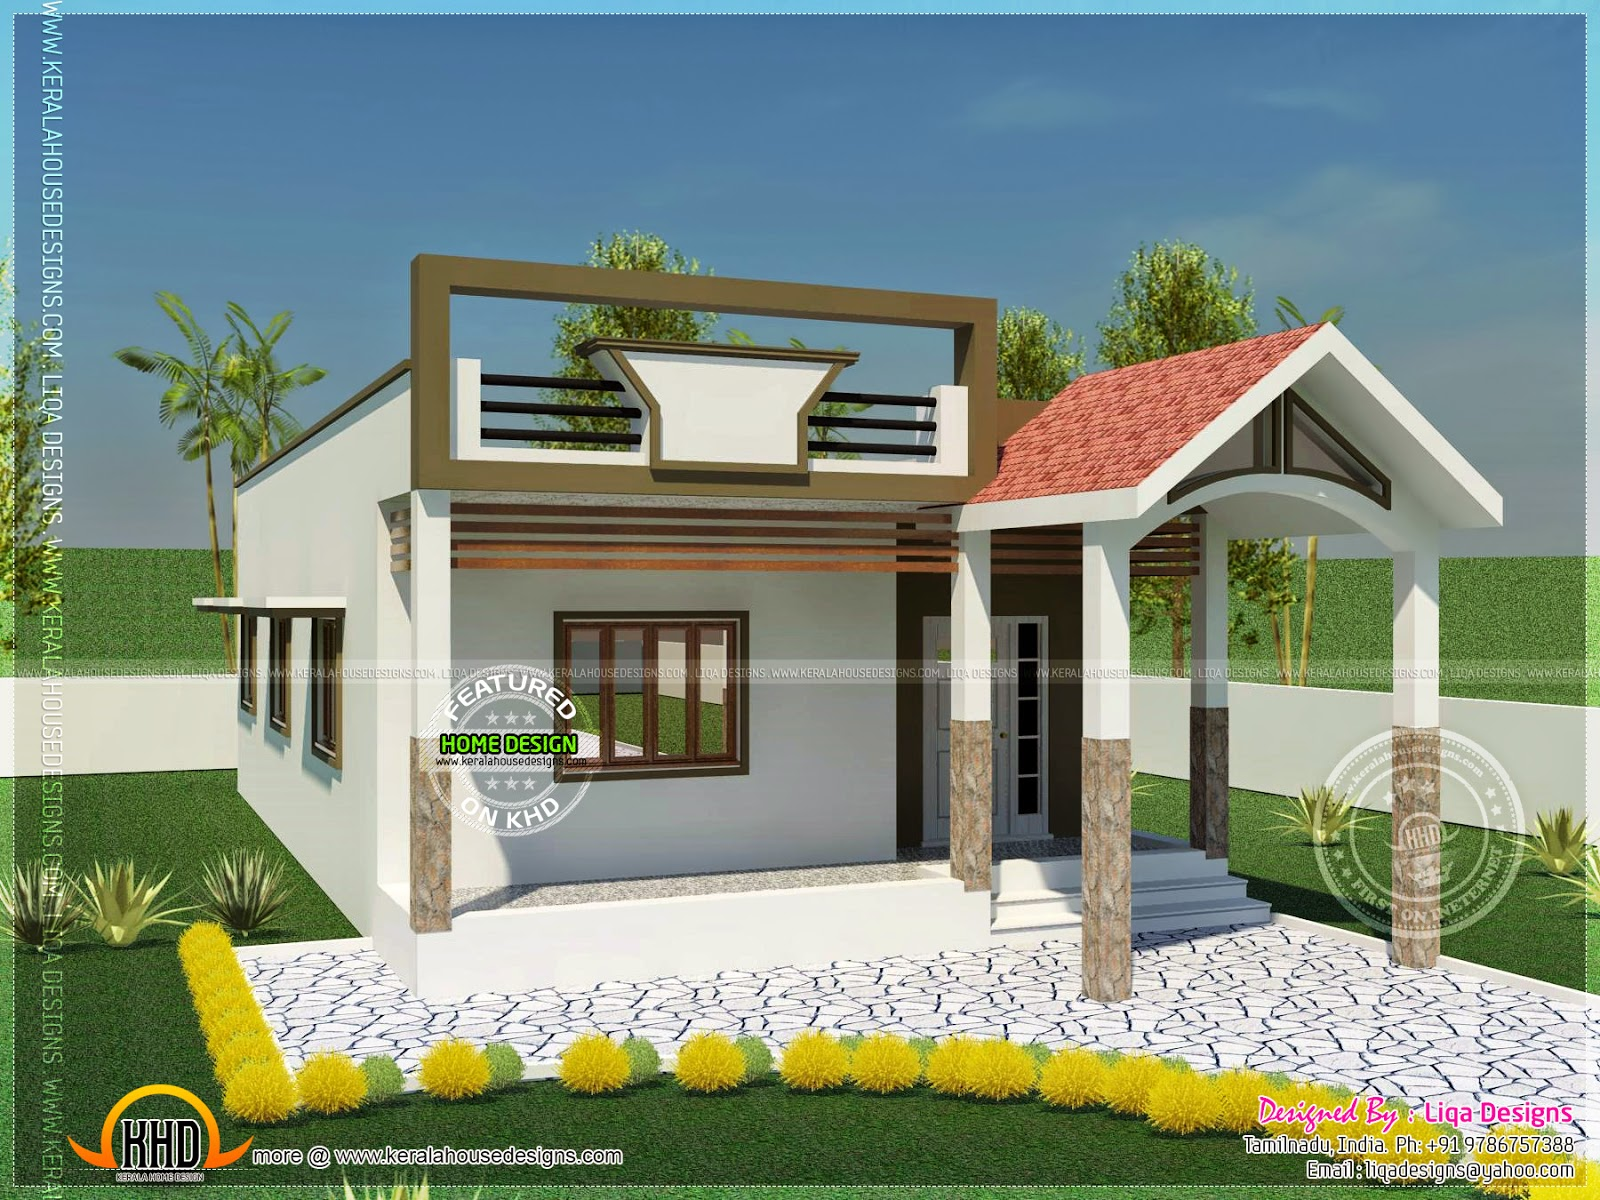 740 square feet single storied house kerala home design for Tamilnadu house designs photos